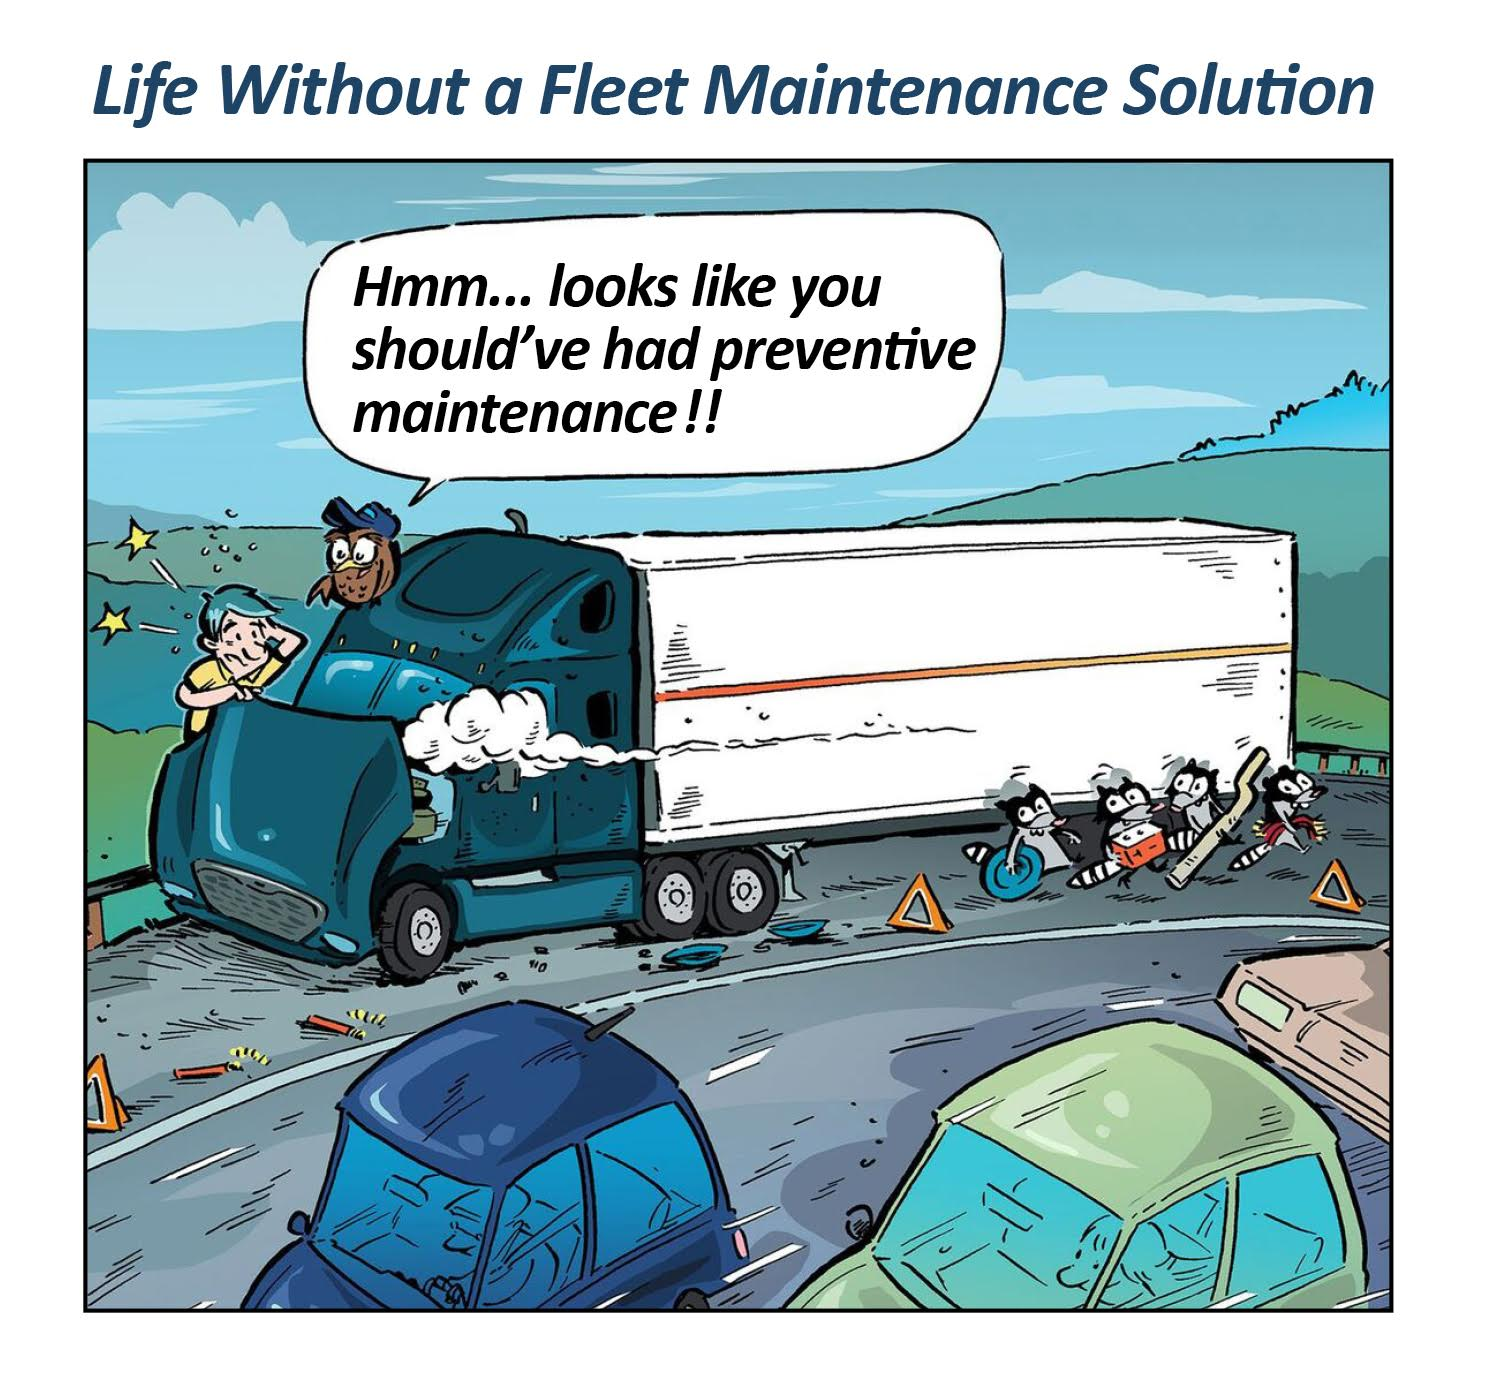 TMW FleetCheck Fleet Maintenance Software helps manage your small transportation fleet in the cloud.